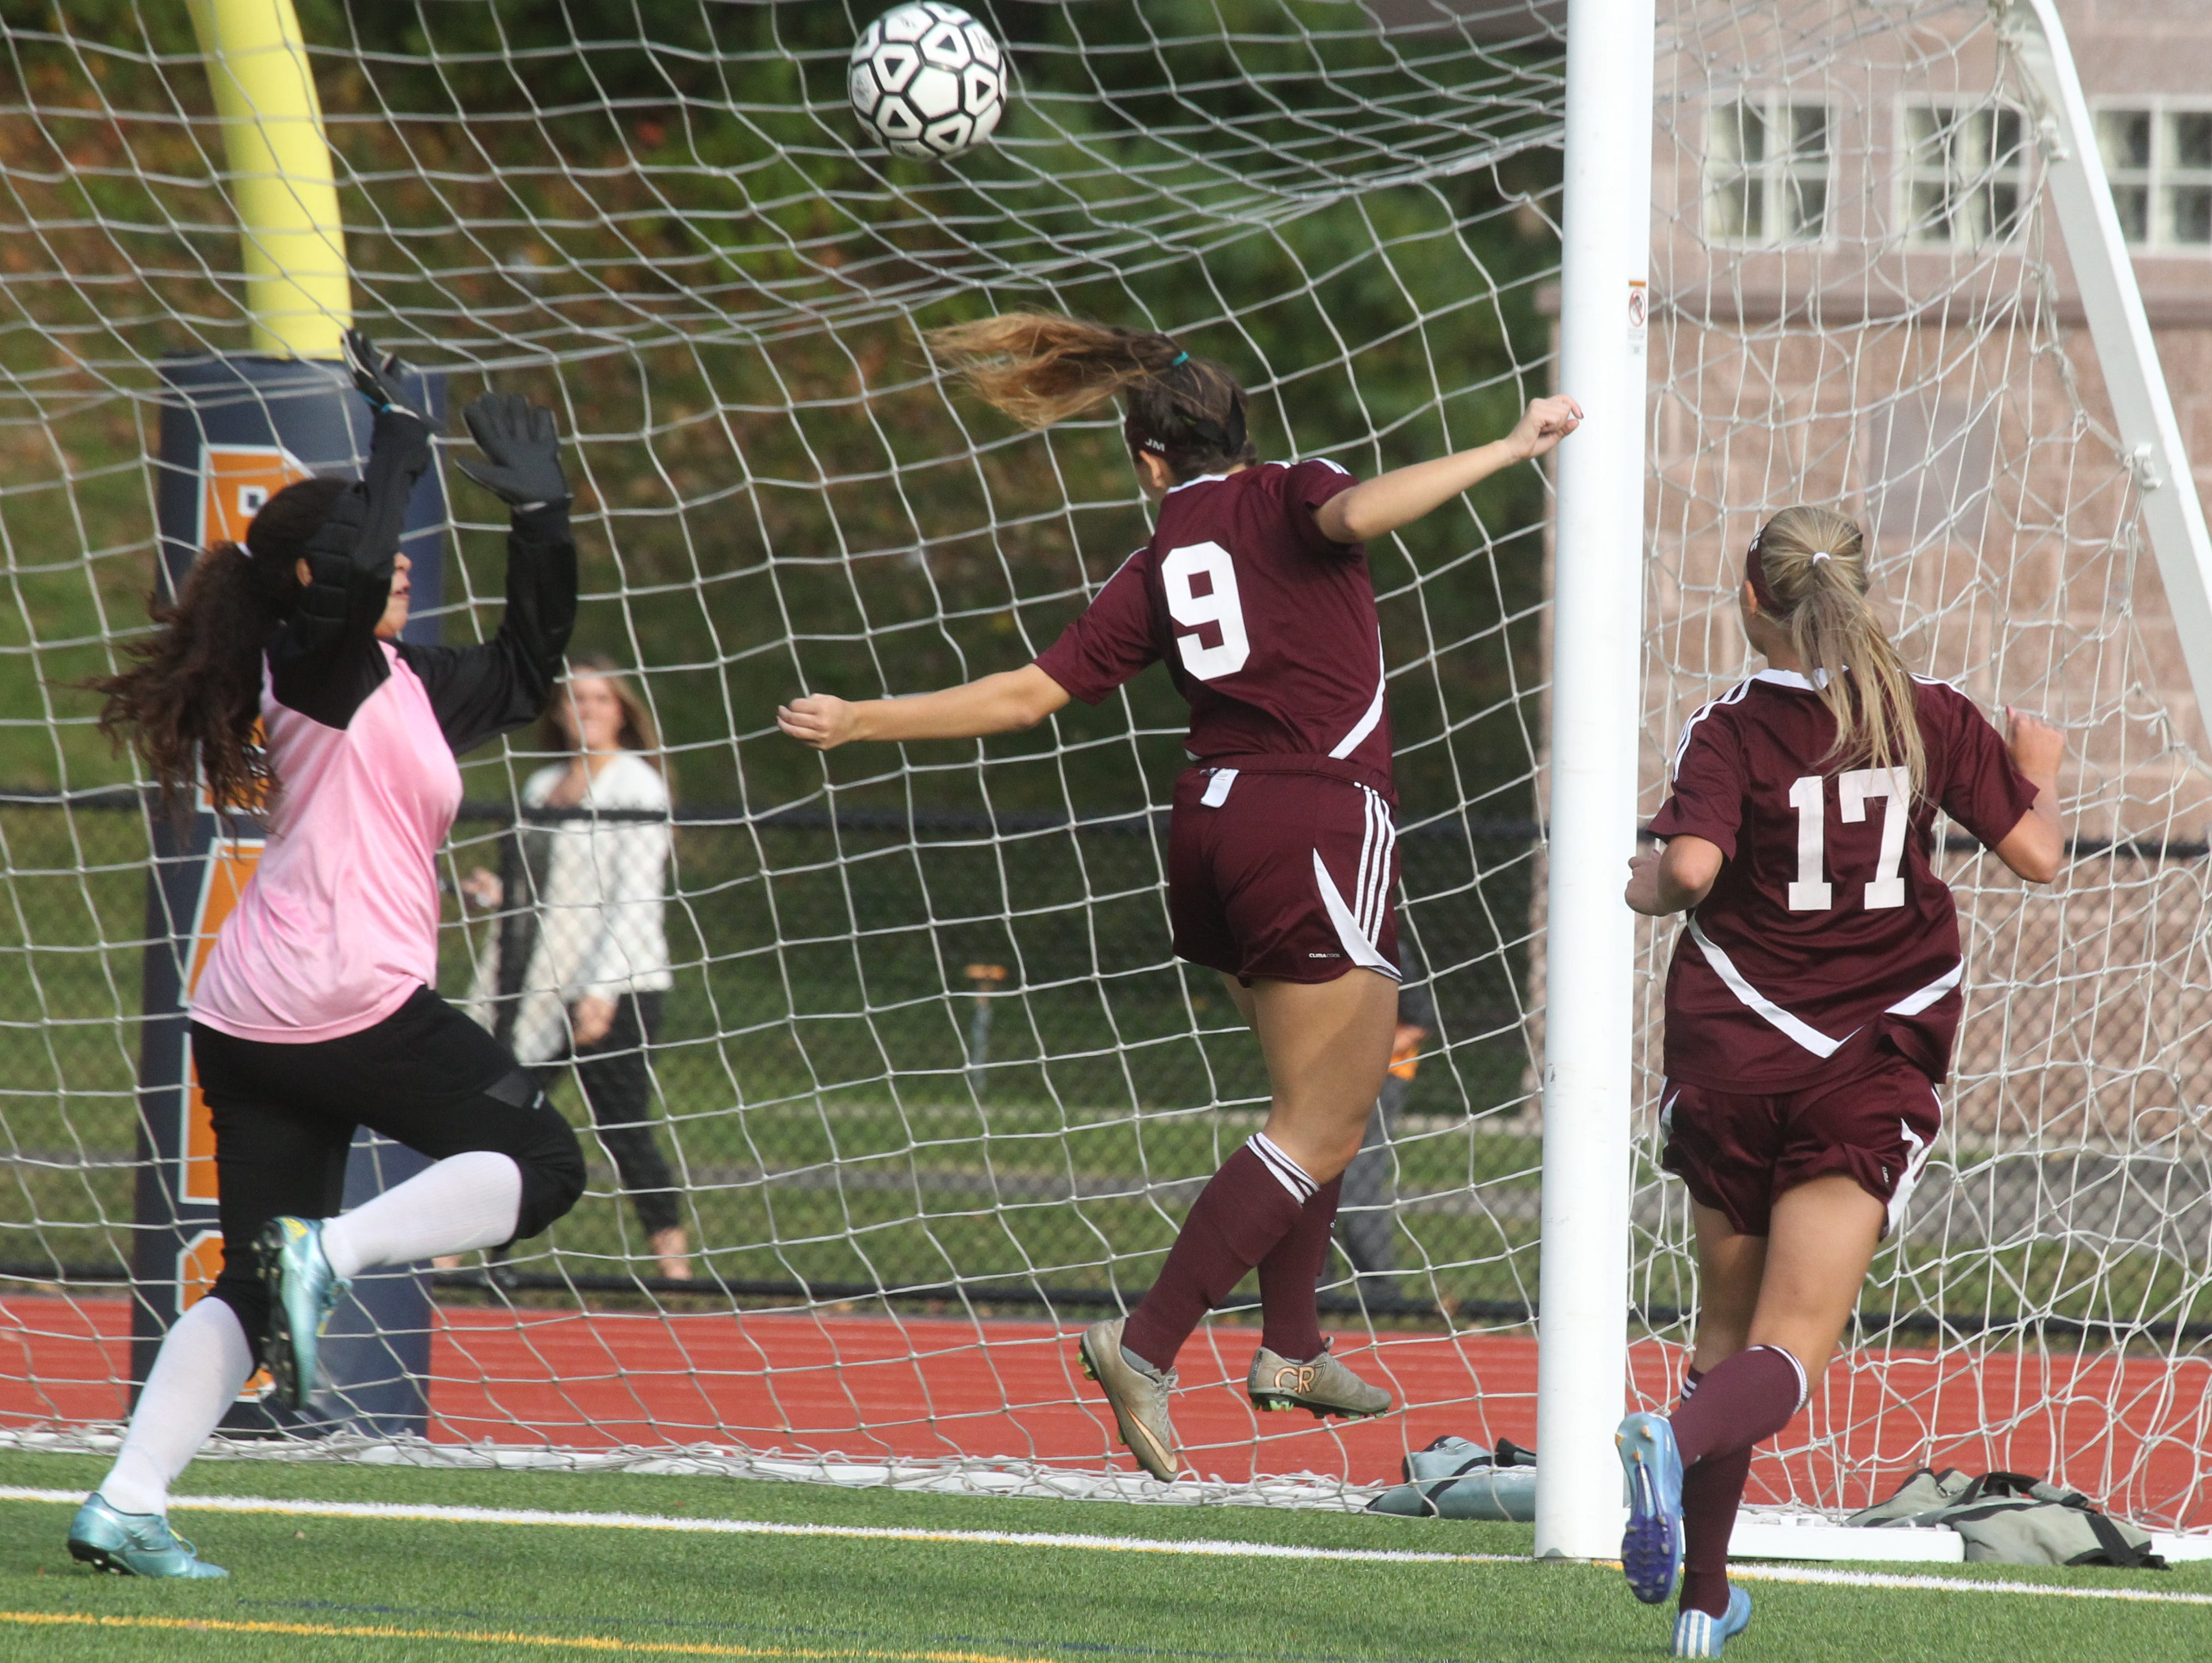 Albertus Magnus' Victoria McNamara scores past Briarcliff goalie Khassandra Muniz during their game at Briarcliff Oct. 8, 2015.